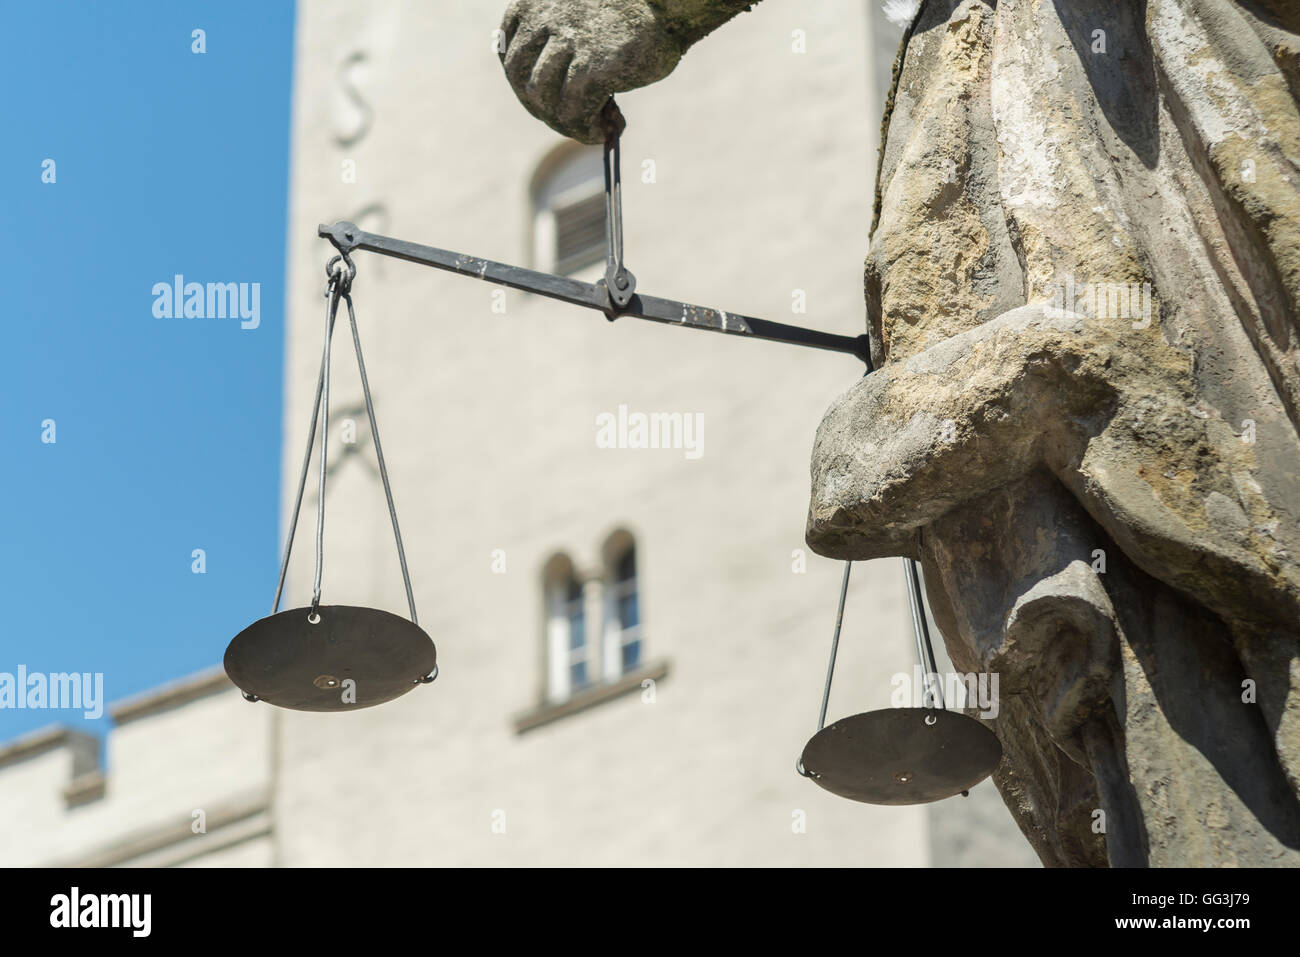 Closeup of the Justitia well in Regensburg with scales in her hands - Stock Image